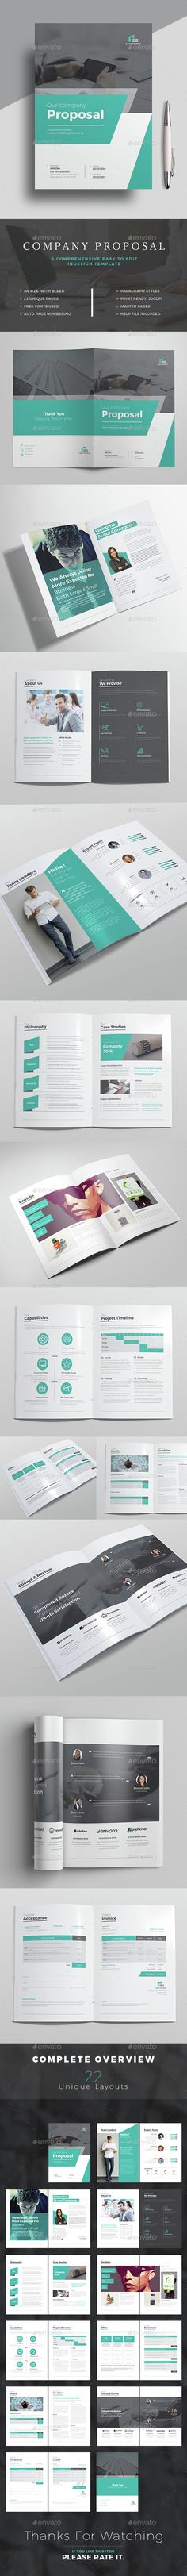 Proposal Template InDesign INDD. Download here: http://graphicriver.net/item/proposal-template/15226494?ref=ksioks